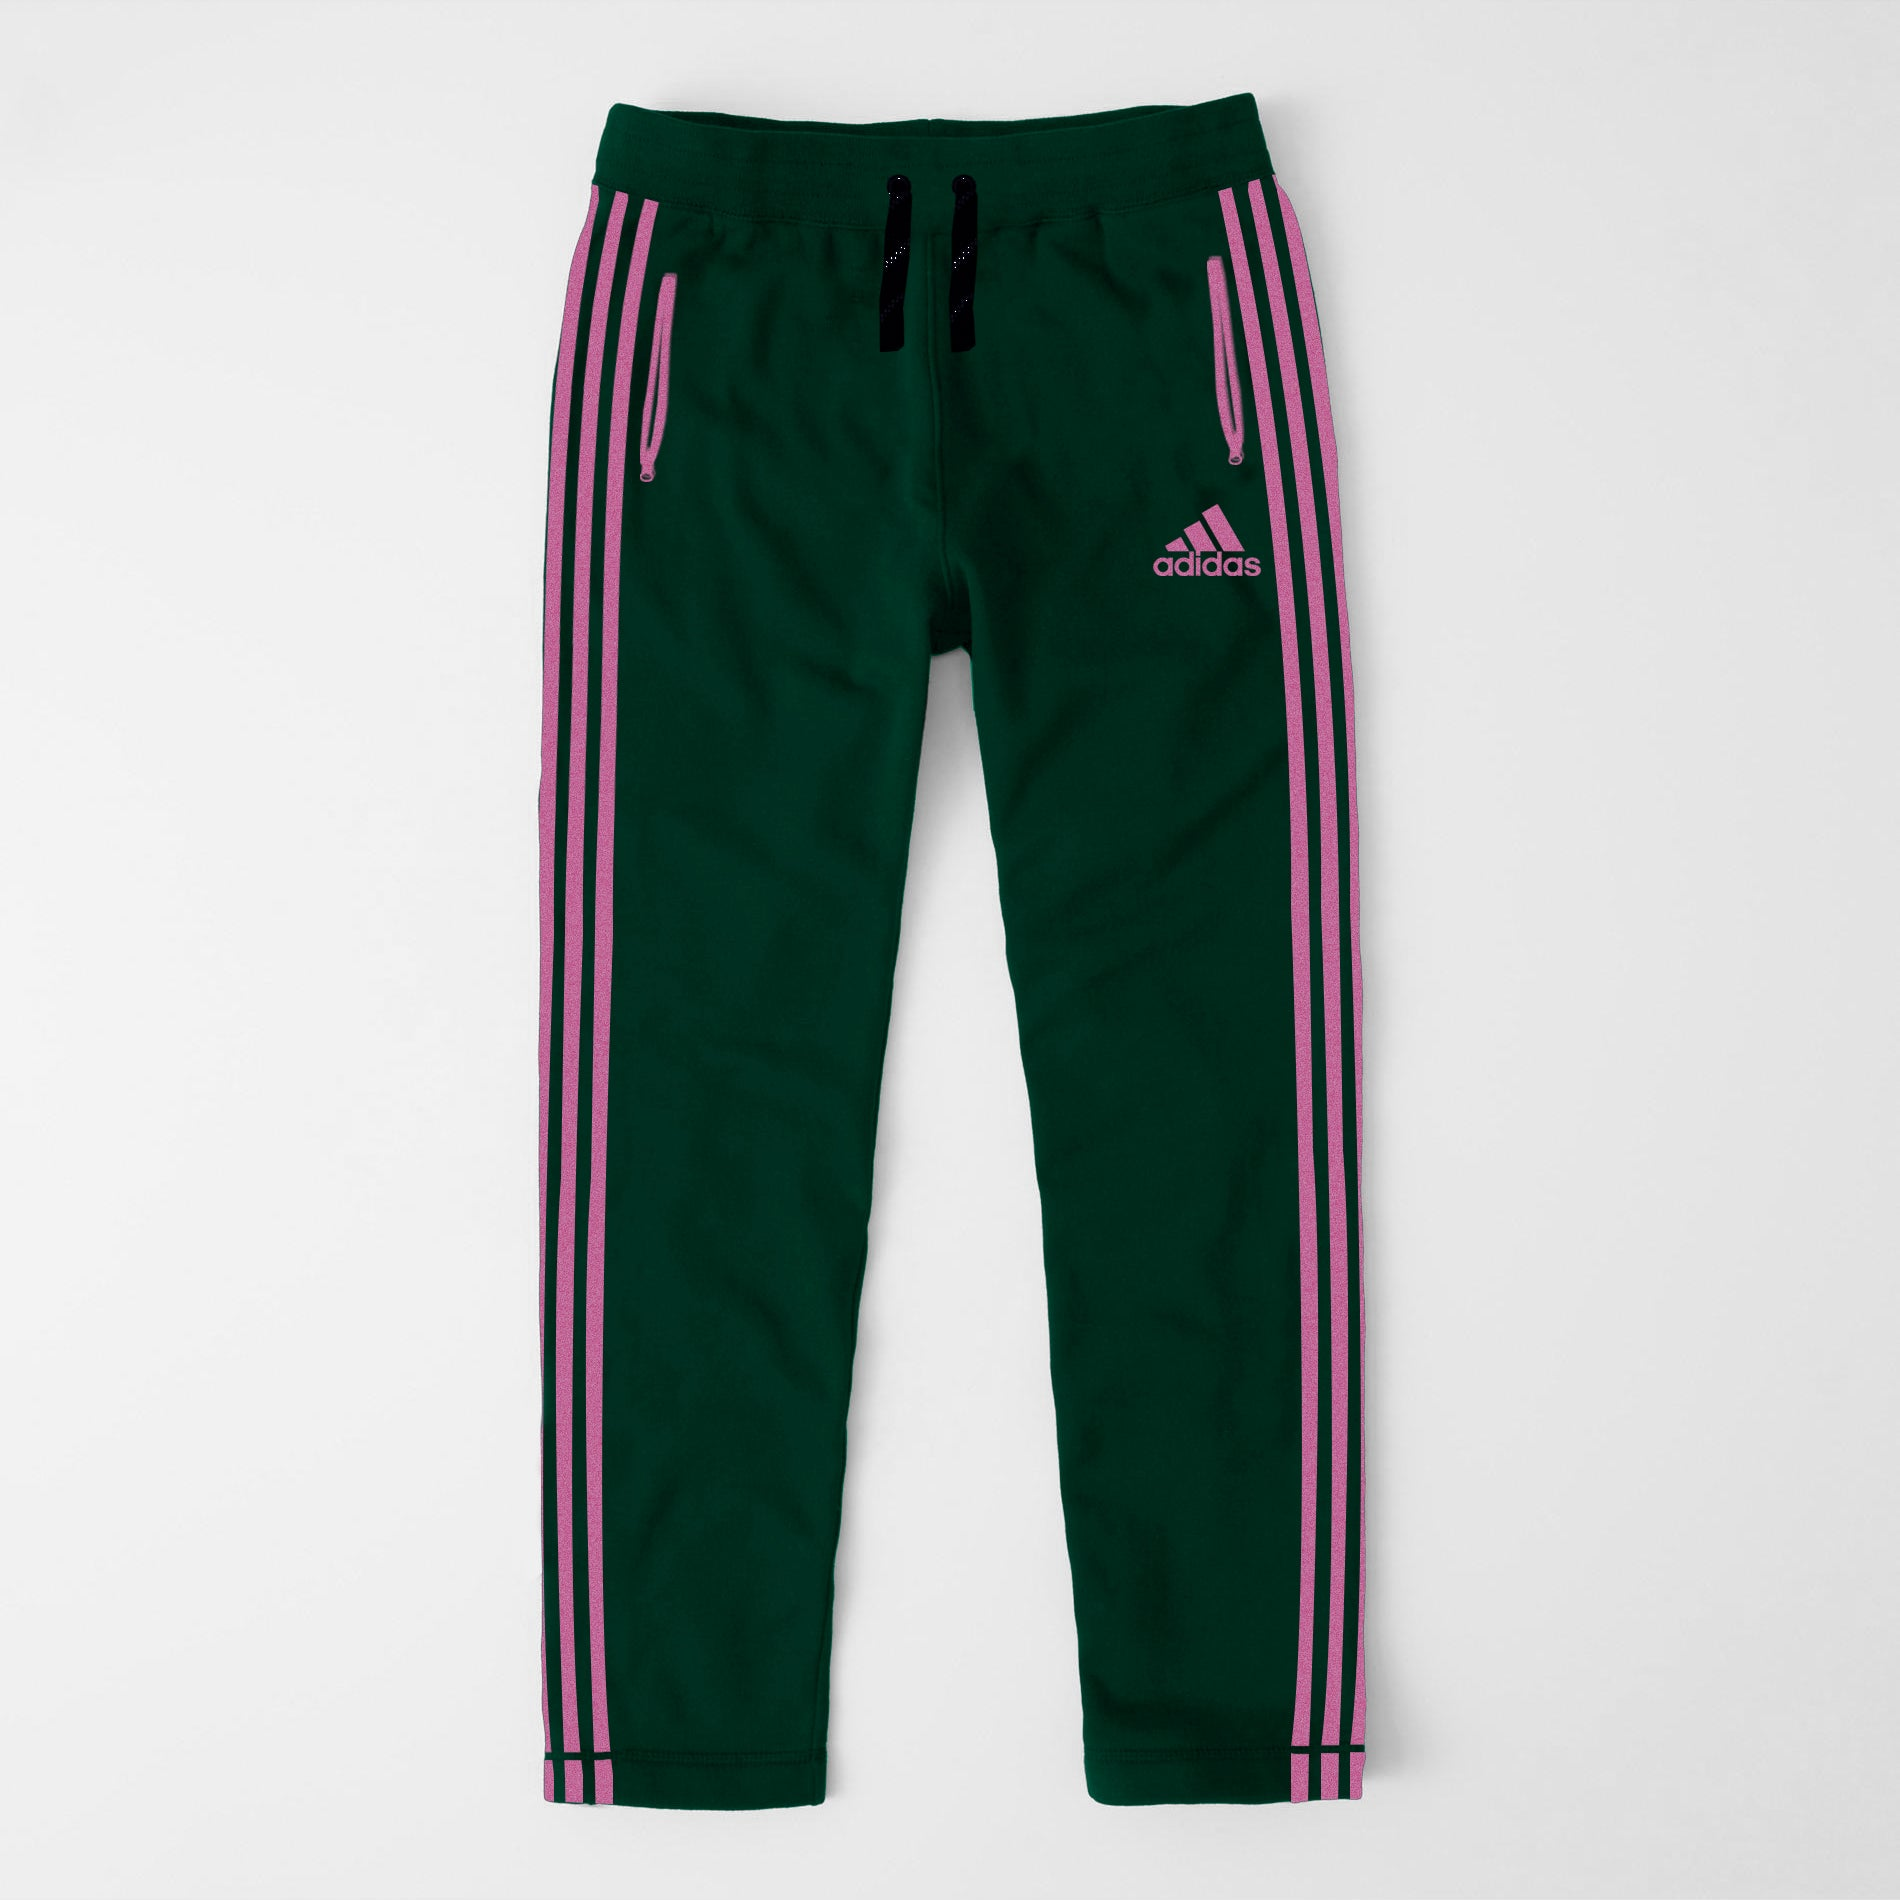 Adidas Single Jersey Regular Fit Jogger Trouser For Men-Green With Light Pink Stripes-NA8345